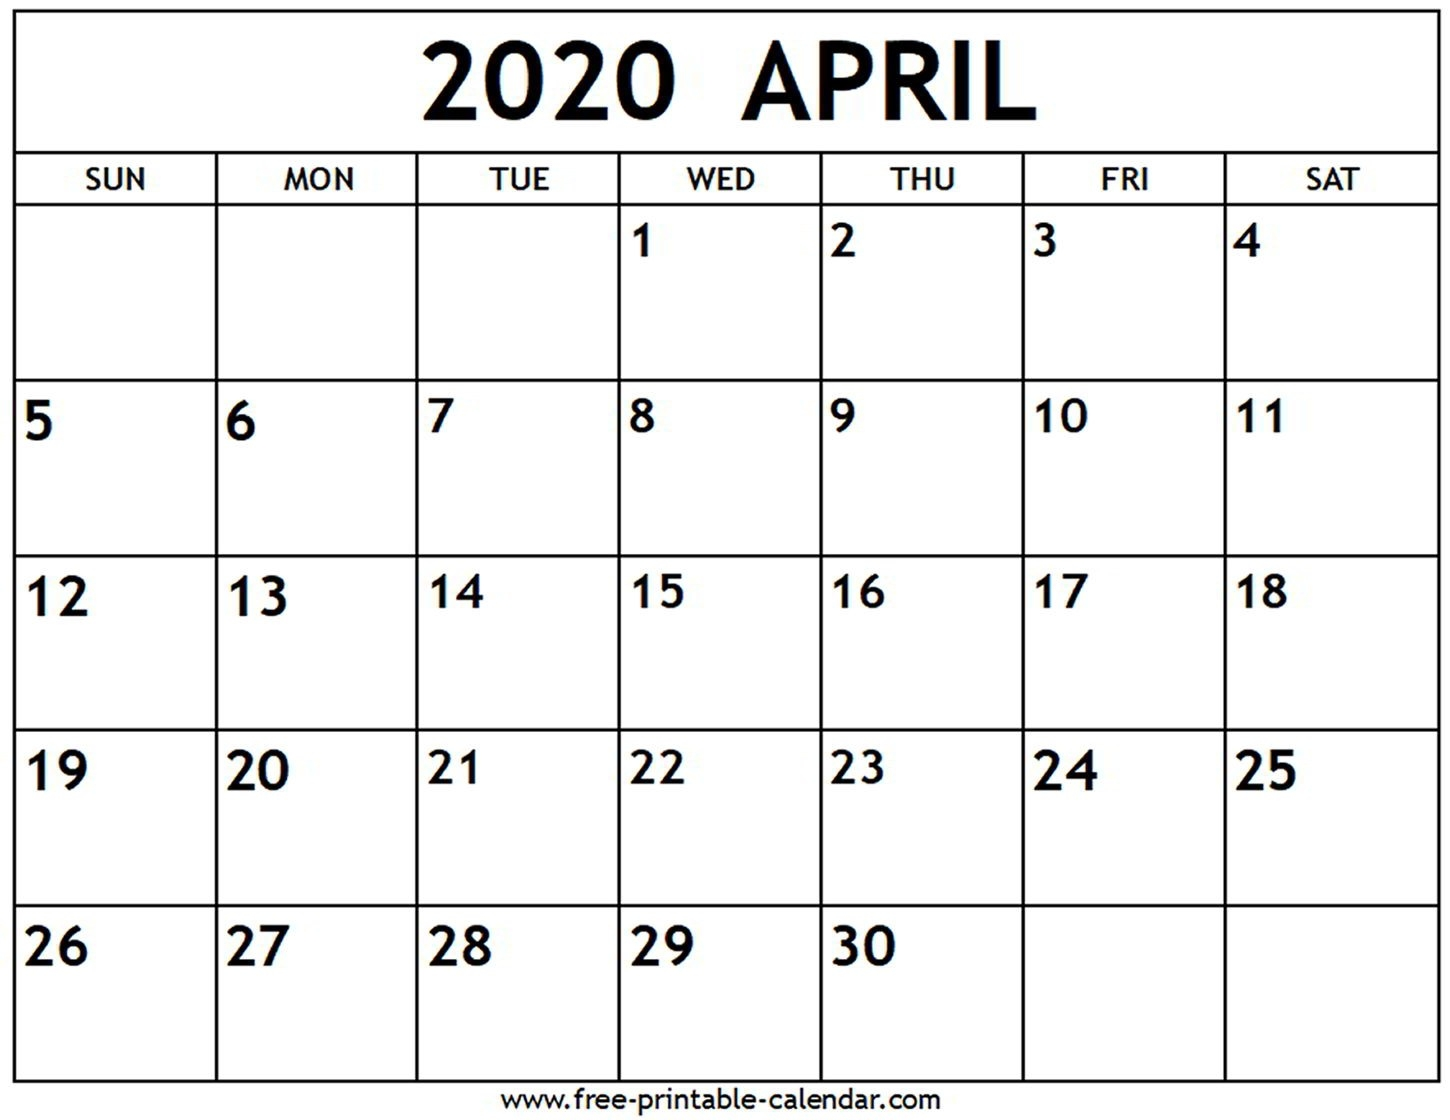 April 2020 Calendar - Free-Printable-Calendar  Printable March 2020 Calendar Pdf